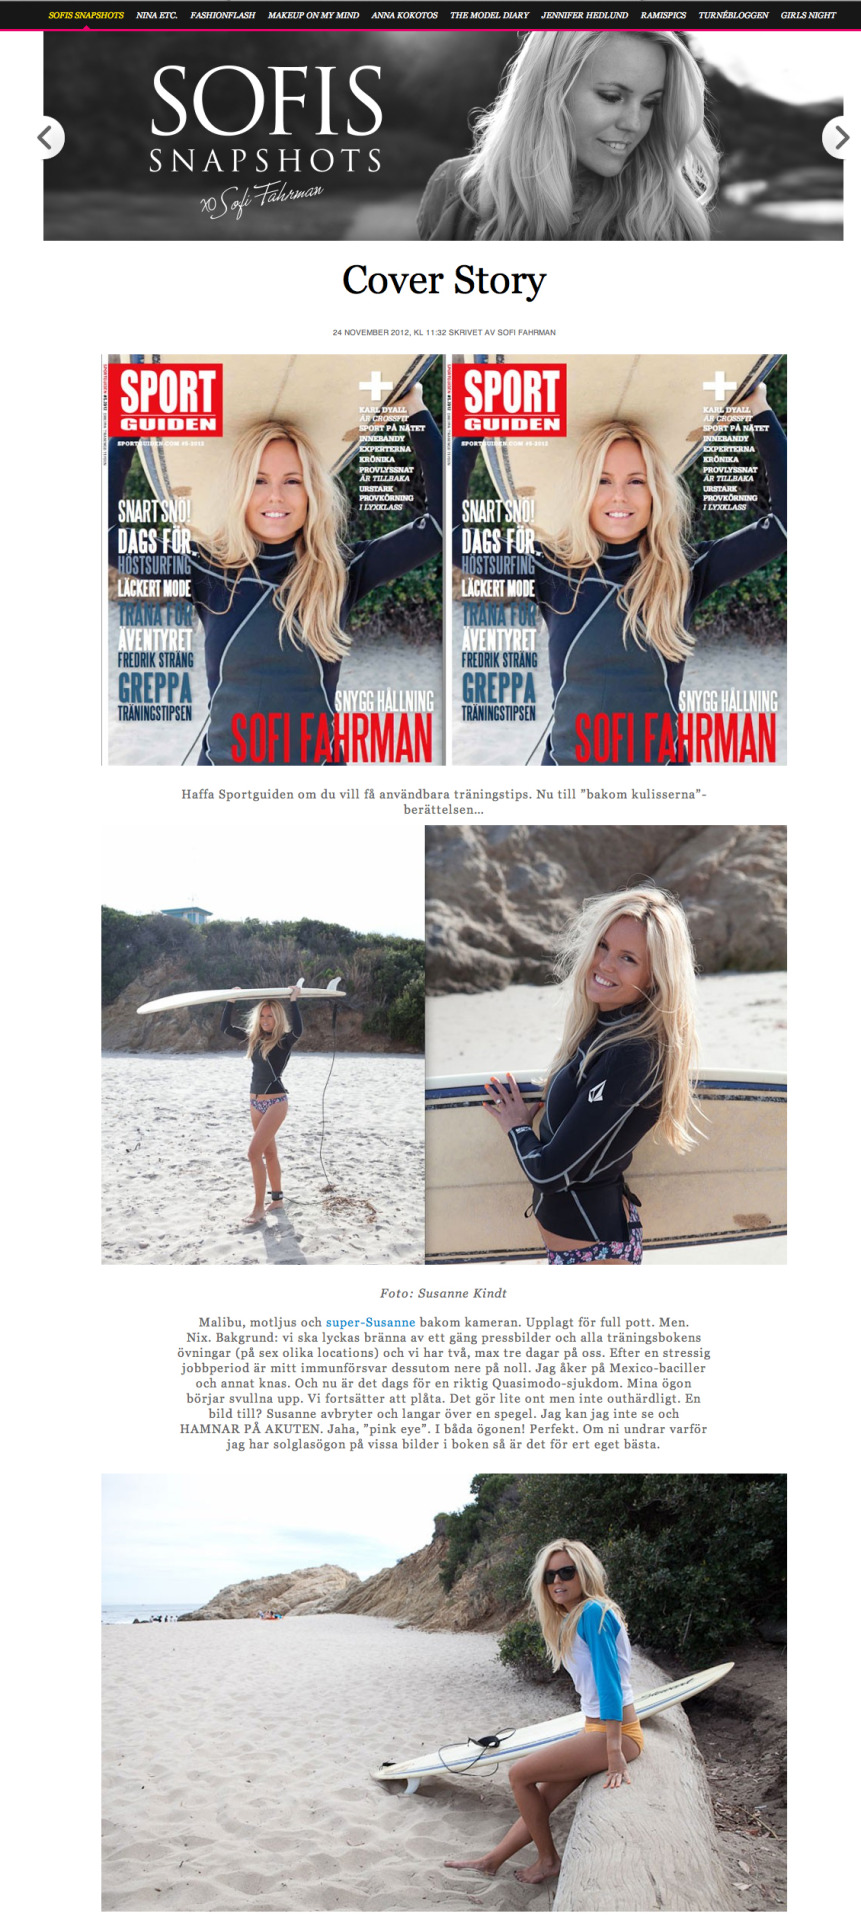 Cover and story of Sofi Fahrman from the book Bodylicious, taken from her blog!